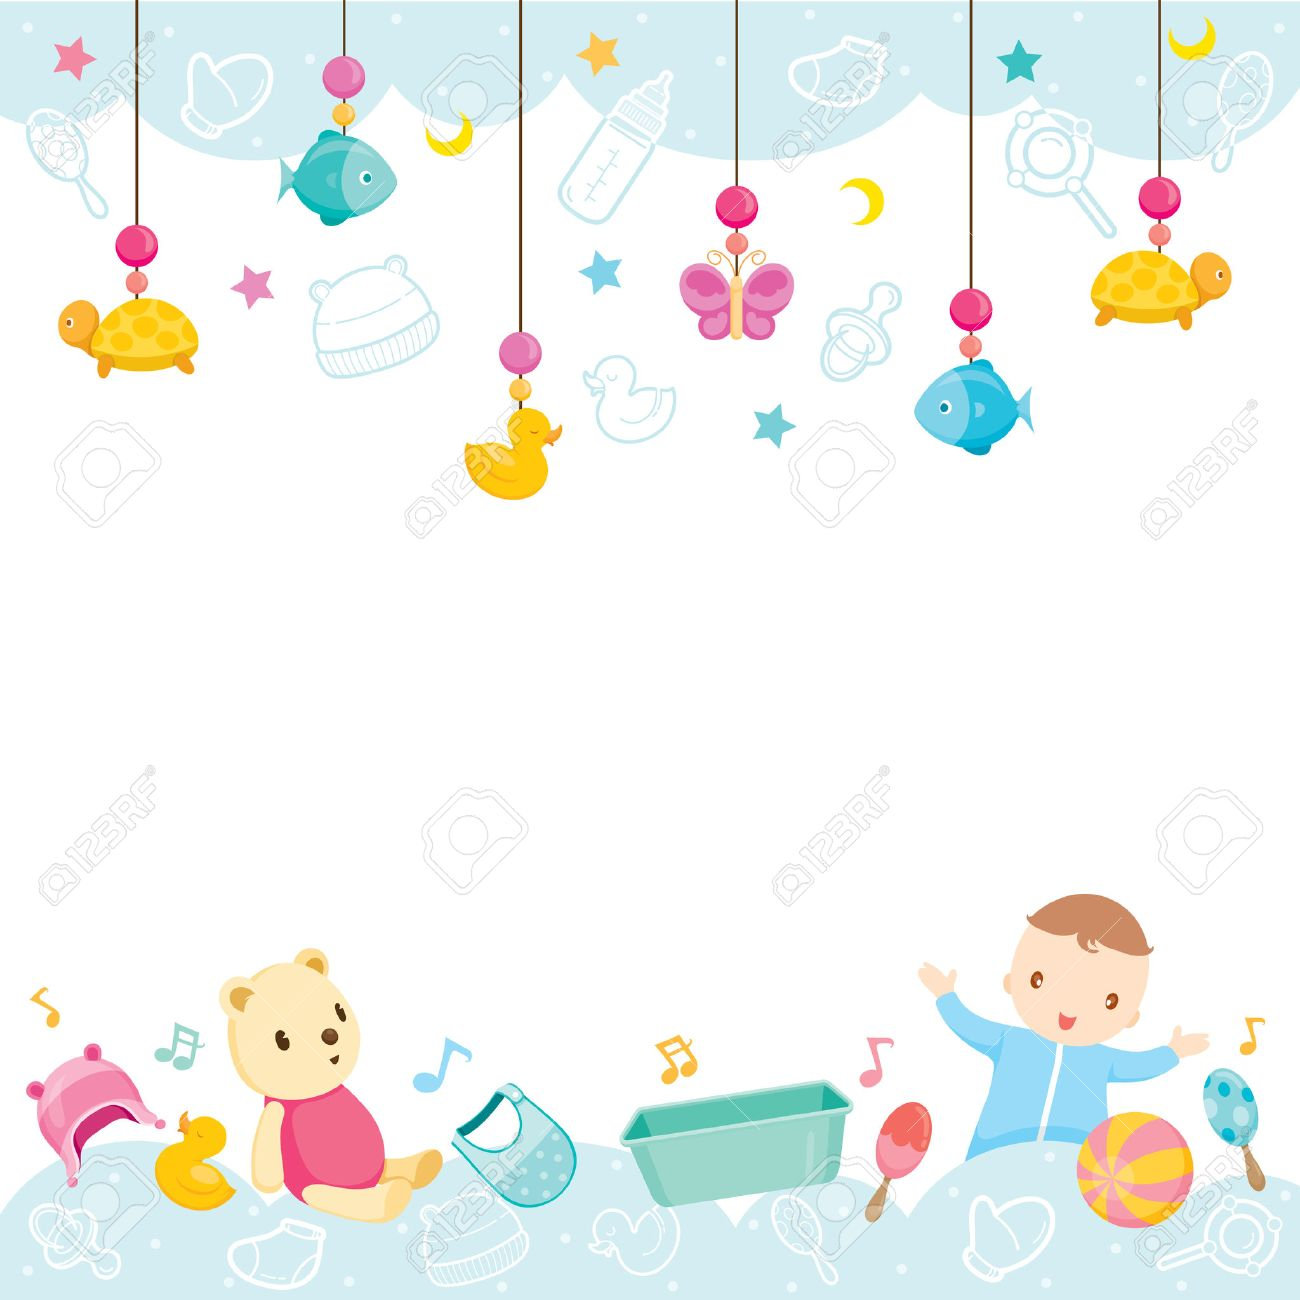 Baby Icons And Objects Background, Baby, Accessories, Frame, Hanging, Background, Border - 55425108